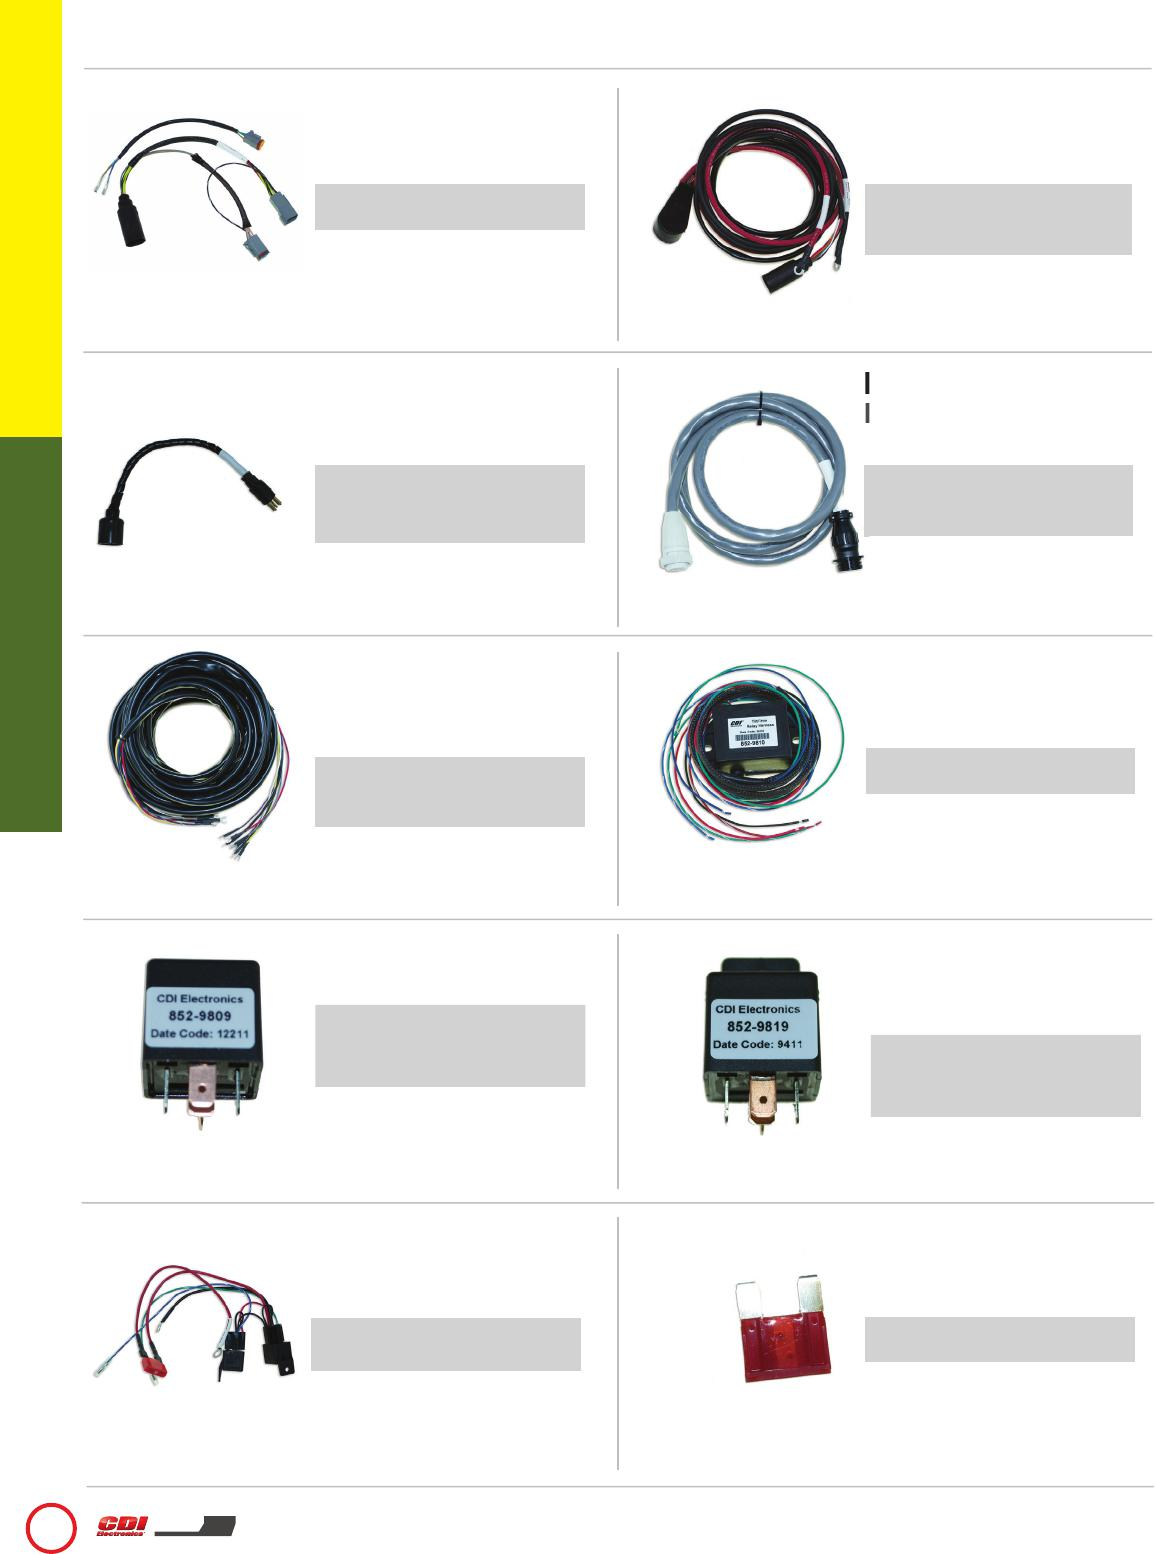 Wiring Harnesses Electrical Supplies Cdi Electronics Catalog Harness